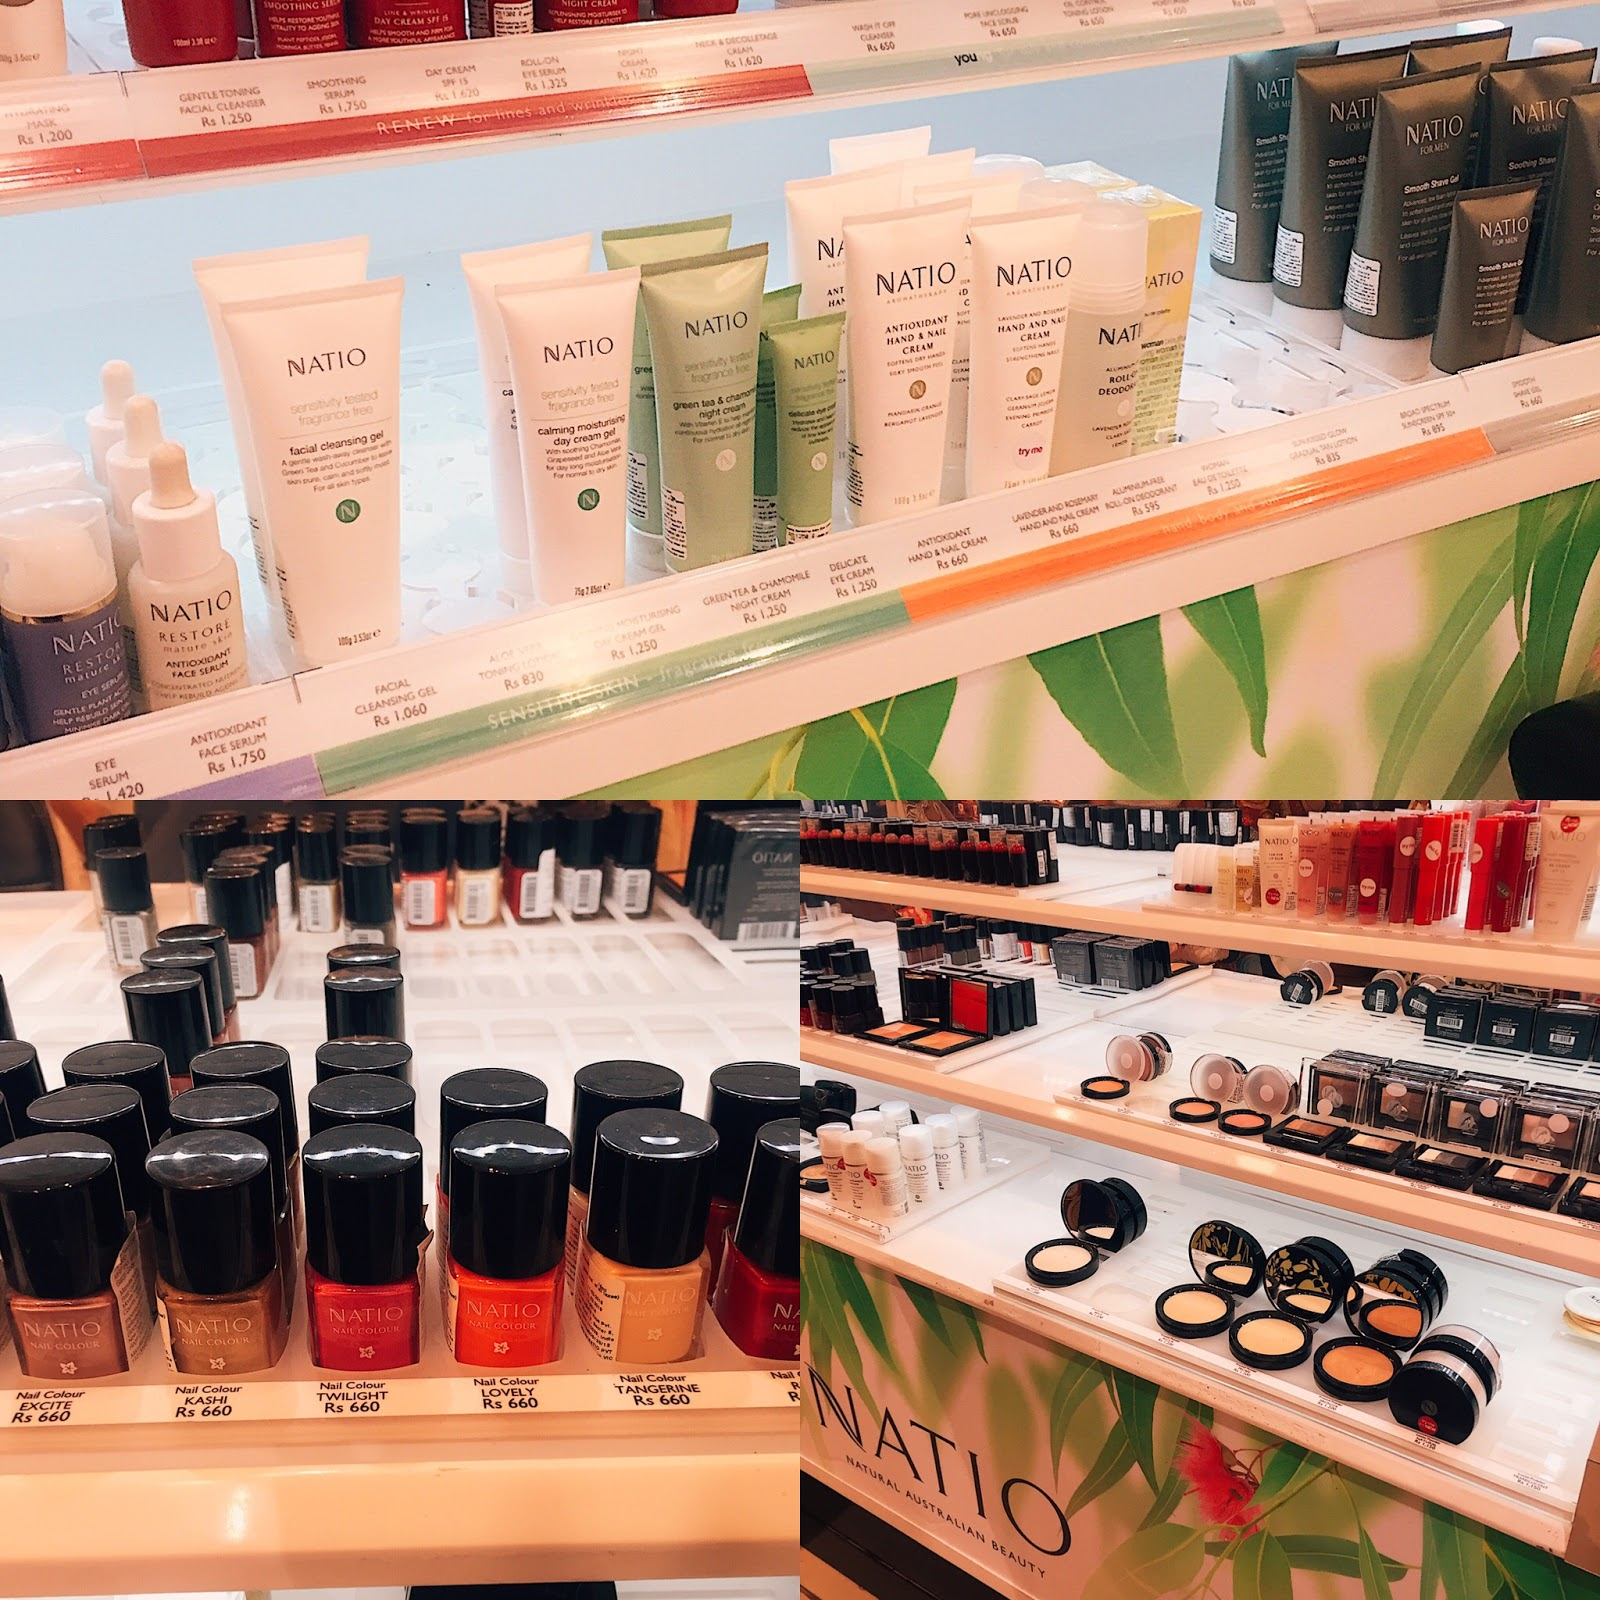 new in delhi, natio, nation australia, natio review, natio india, natural makeup, top delhi blog, delhi blog, top indian blog, indian blogger